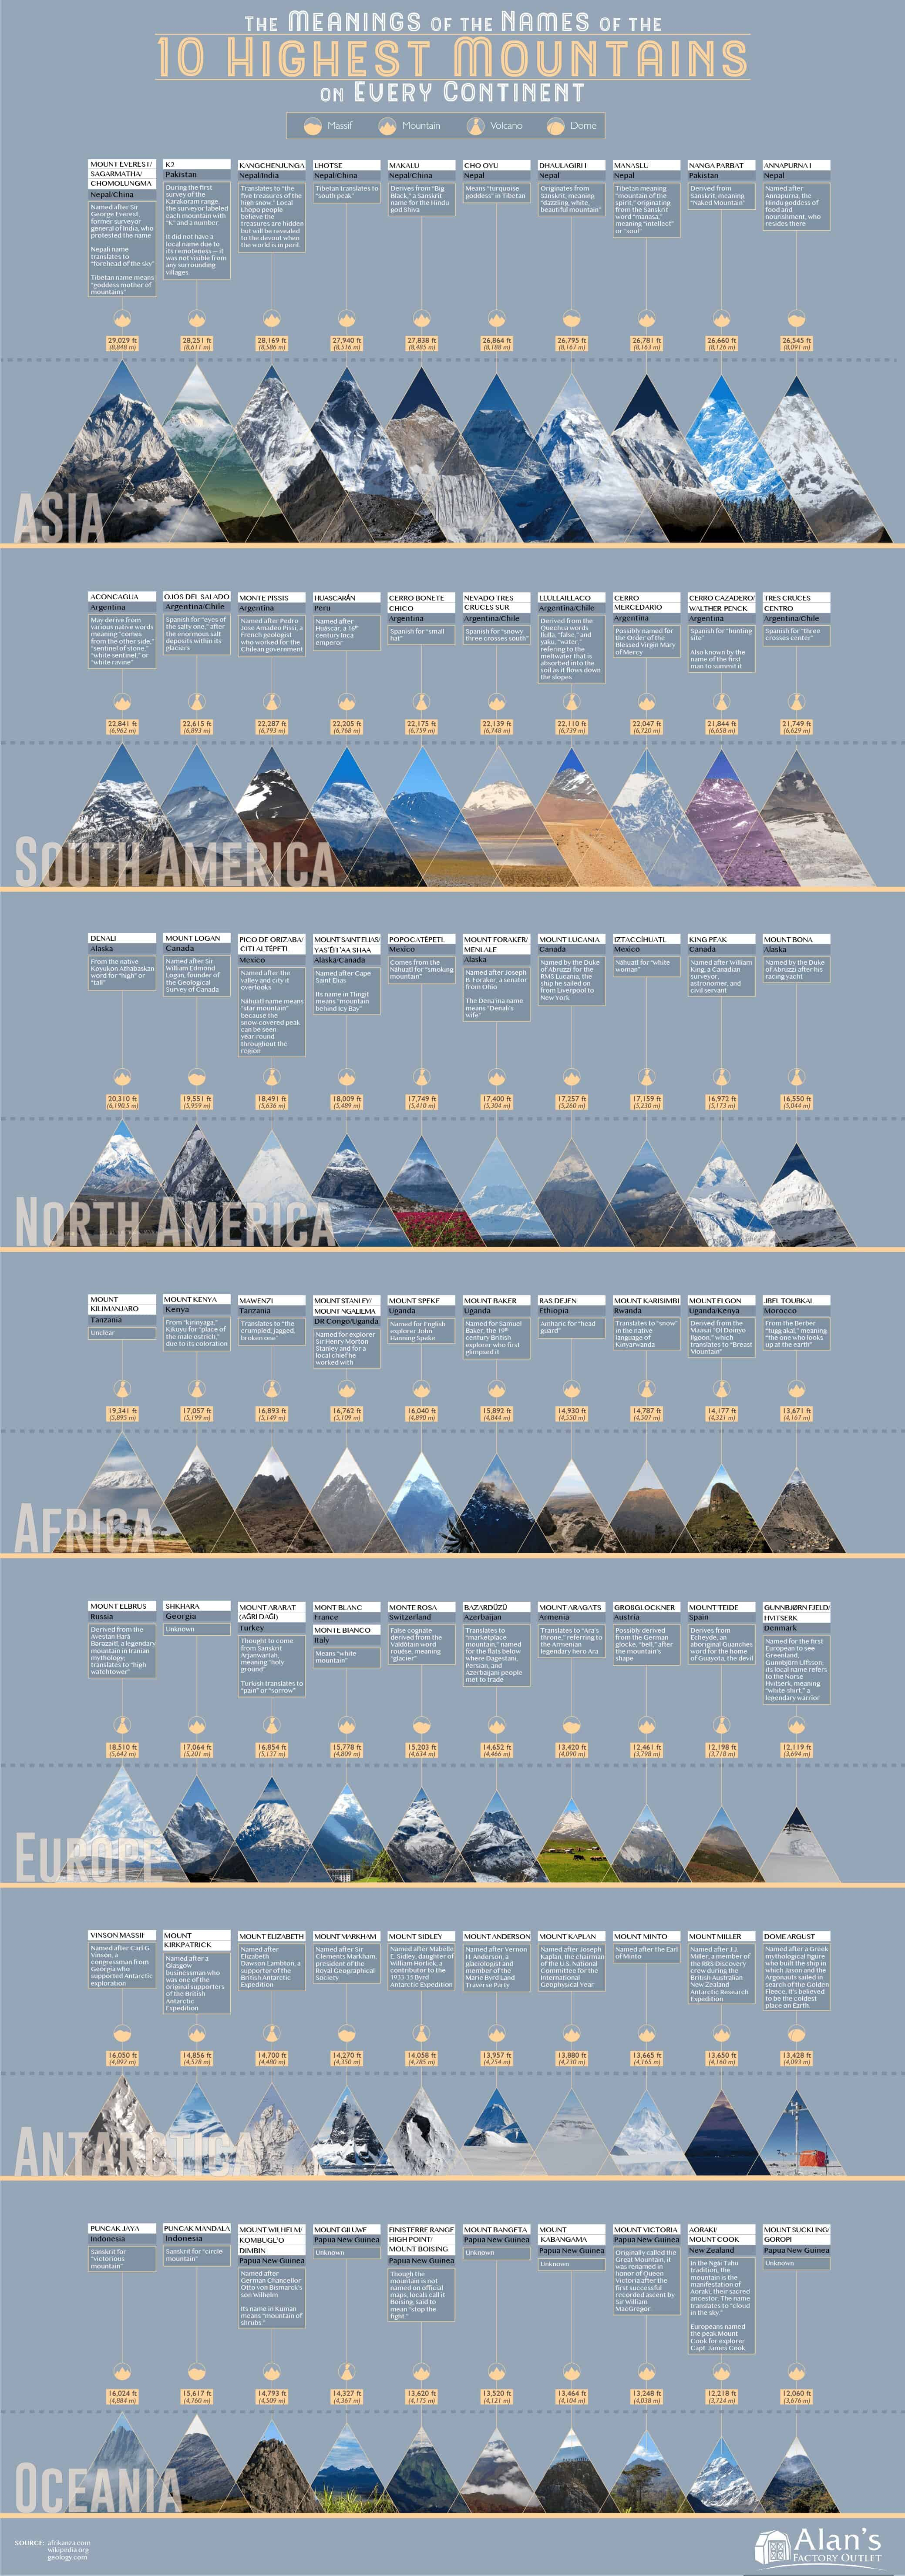 The Etyomology of the 10 Tallest Mountains on Every Continent in the World